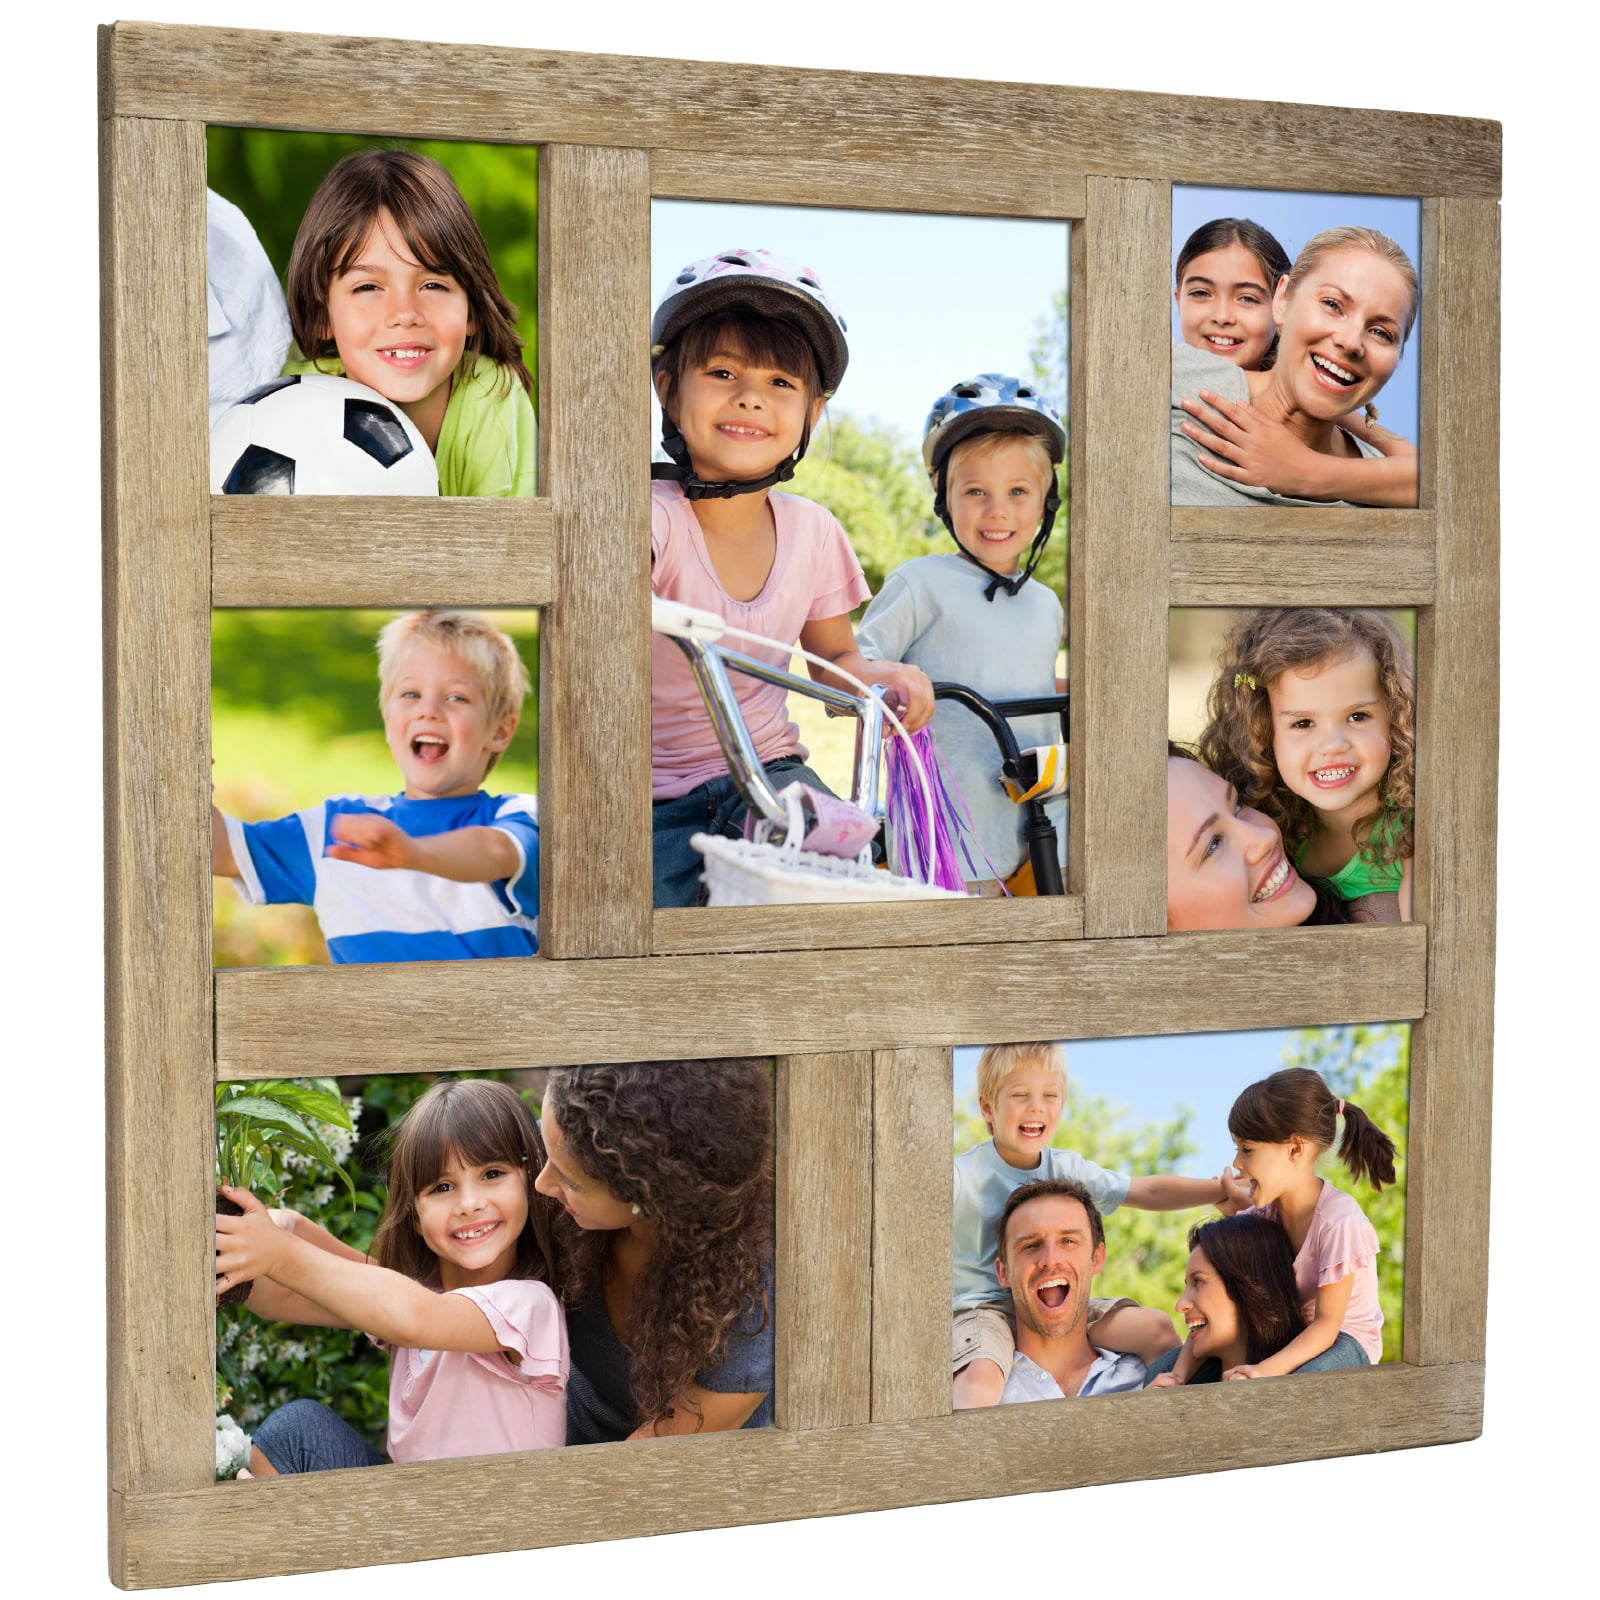 Rustic Distressed Wood Collage Picture Frames Holds 7